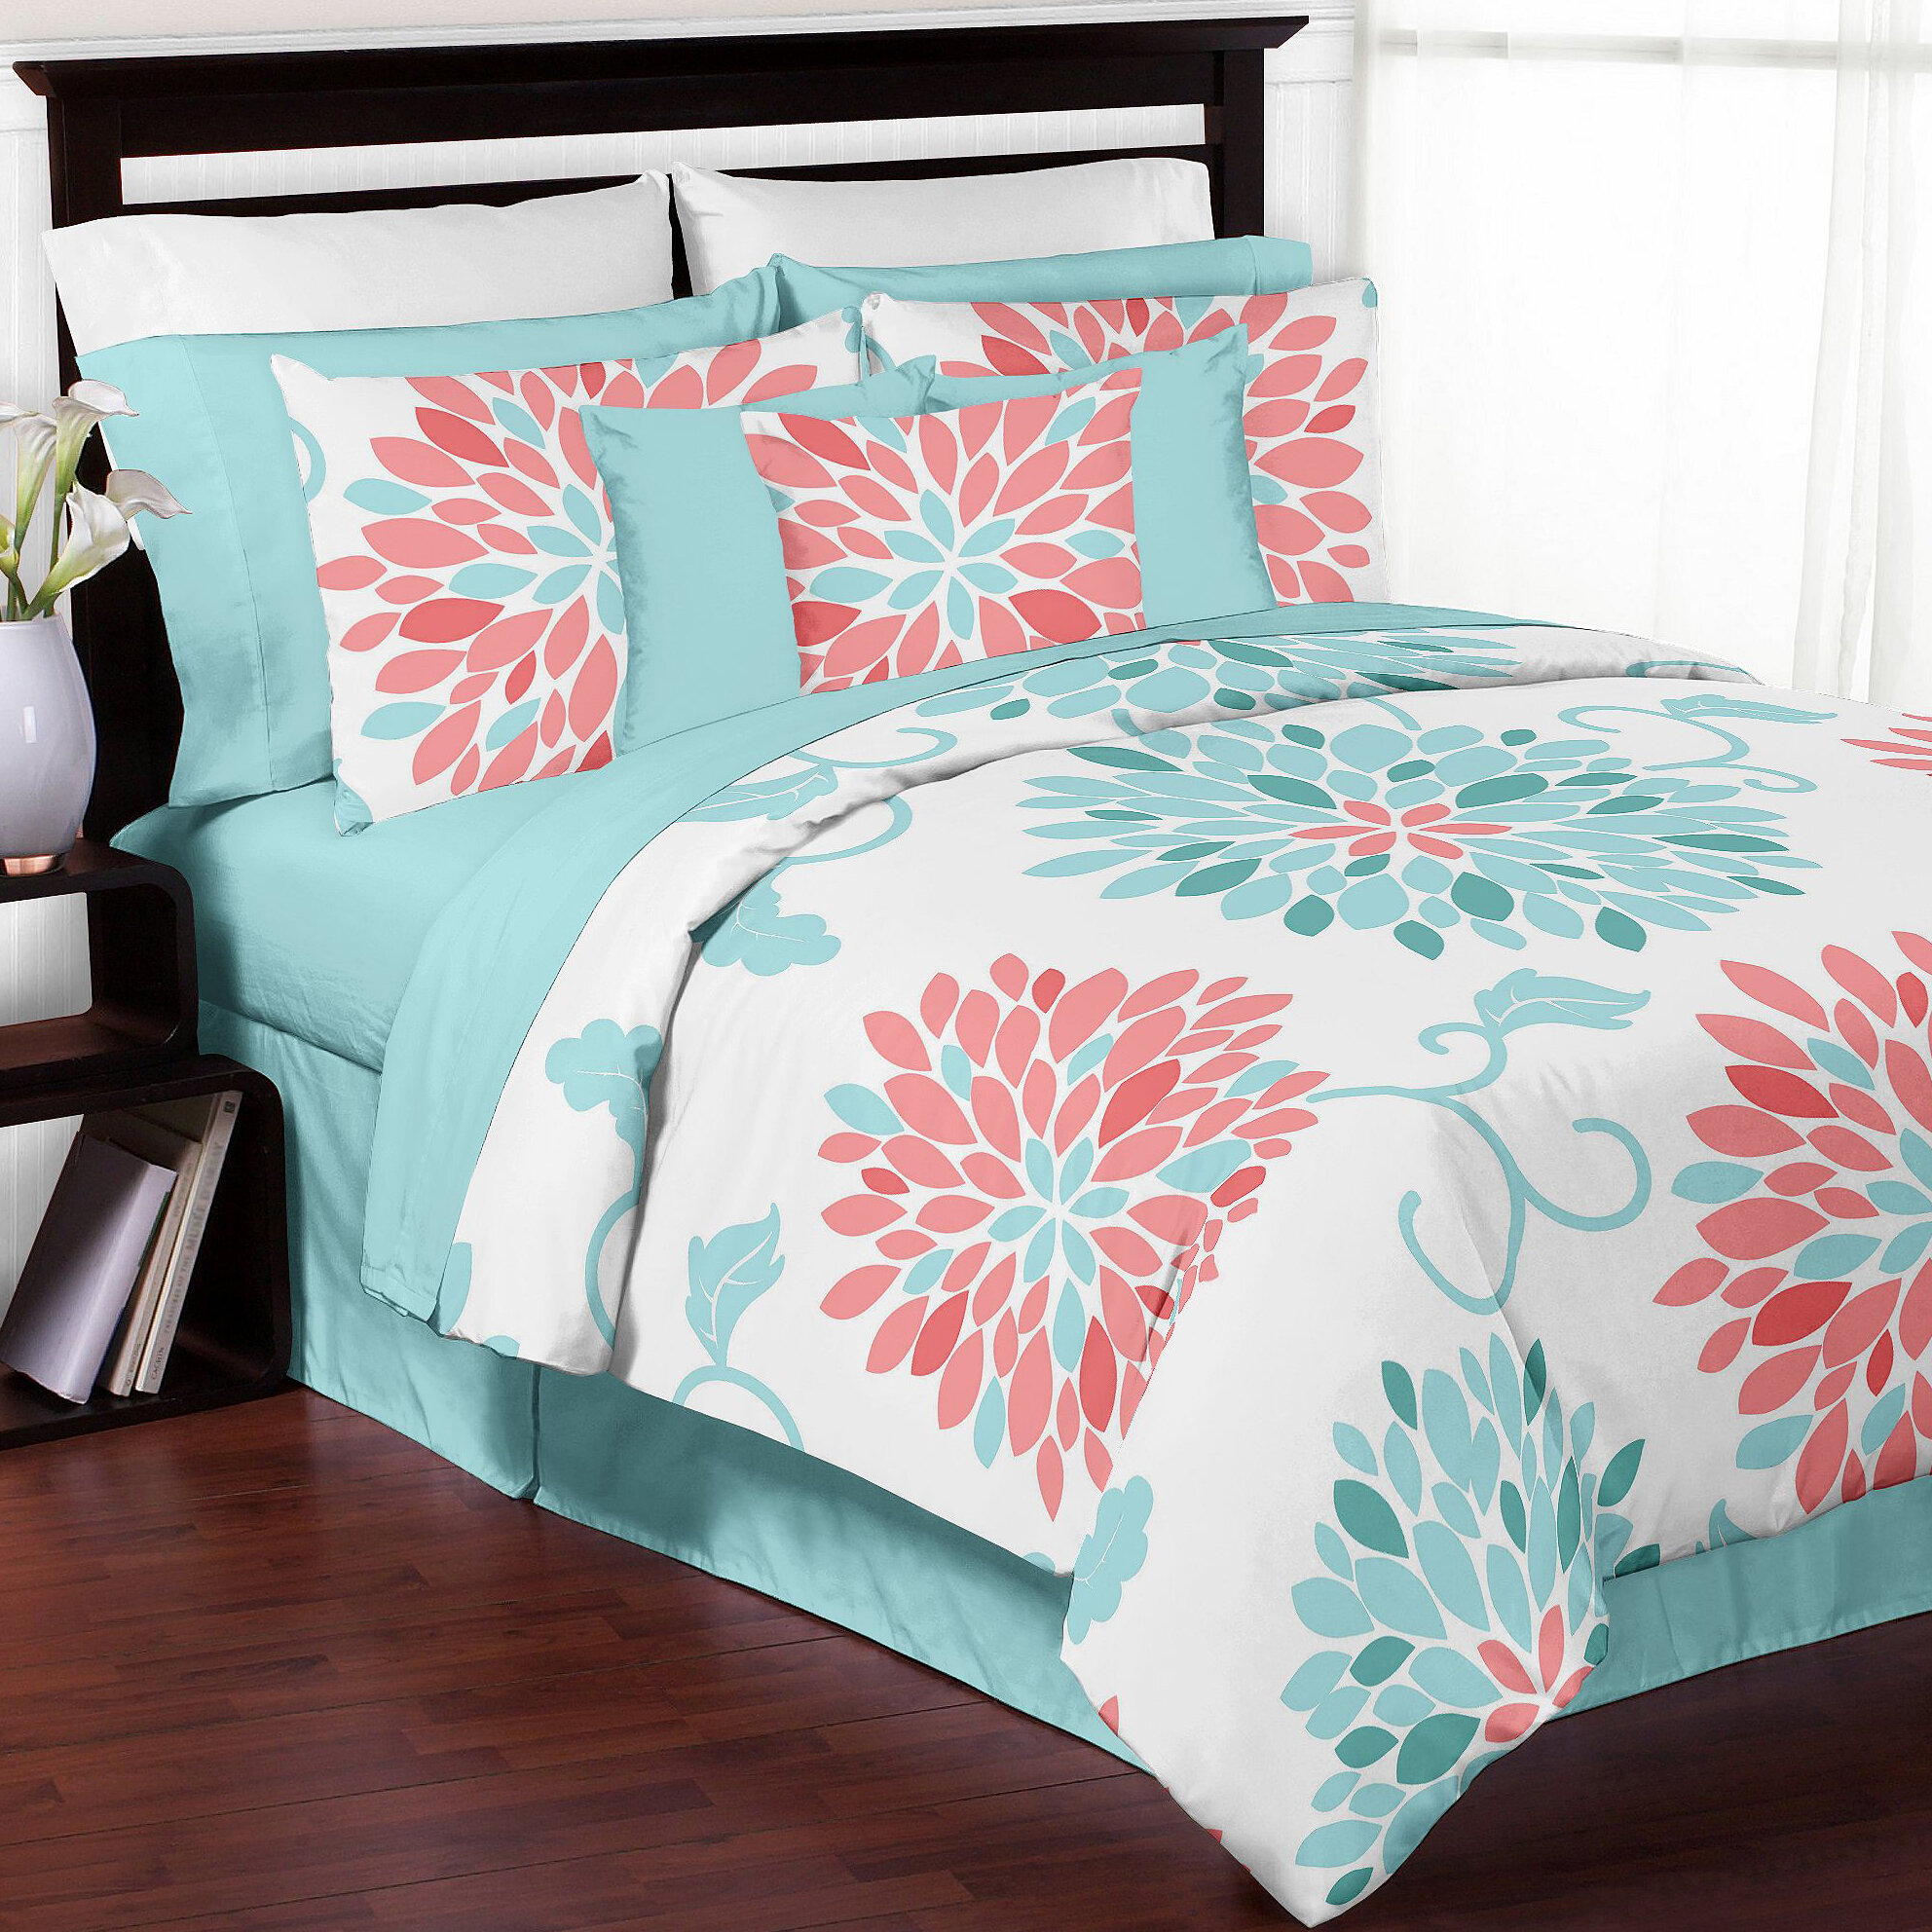 hr main bed coral bedeck bedding heidi helena springfield hs at